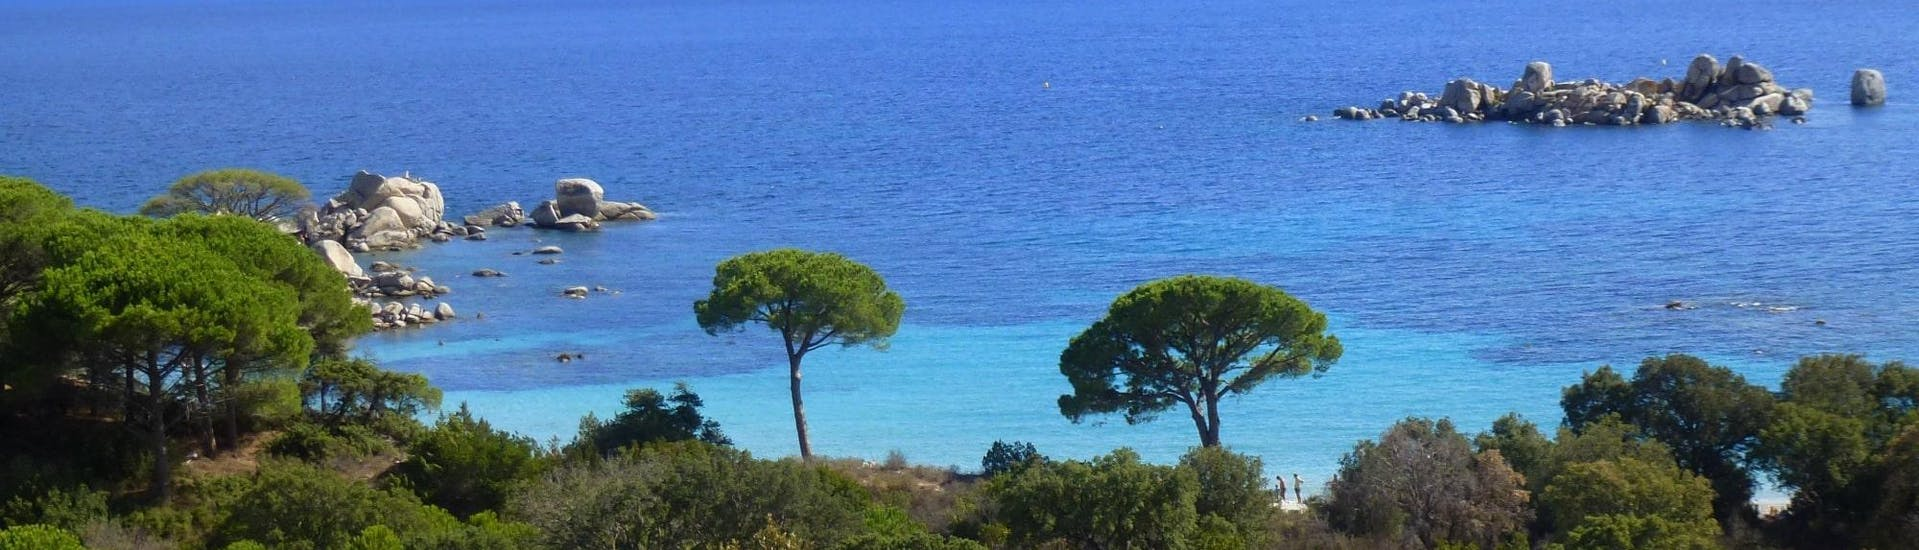 View of the Palombaggia Beach in Porto-Vecchio where the diving center Le Kalliste Plongée offers trial dives, diving course and snorkeling trip.